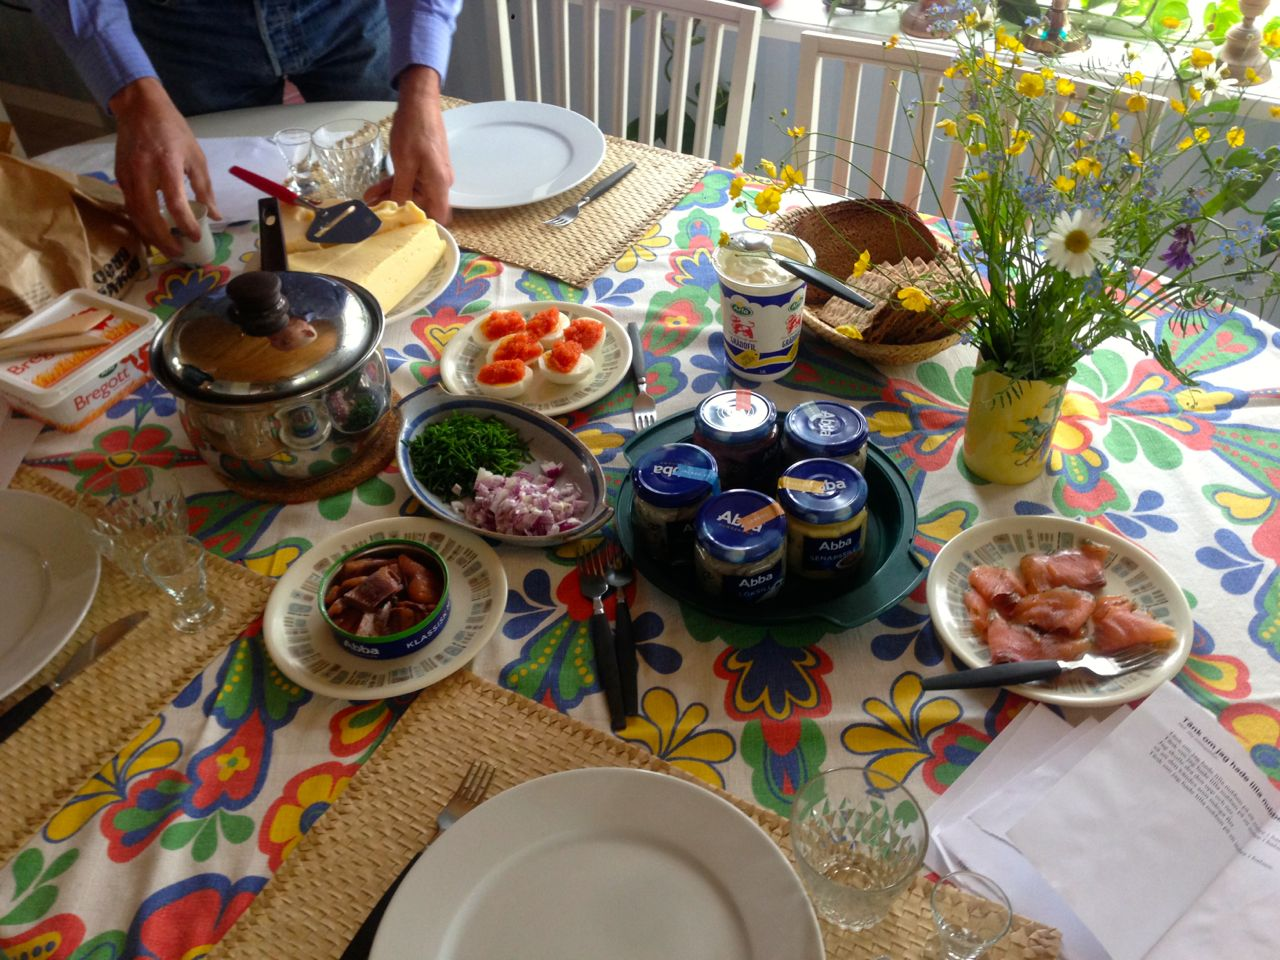 Traditional Swedish midsummer lunch with herring and boiled potatoes, among other things